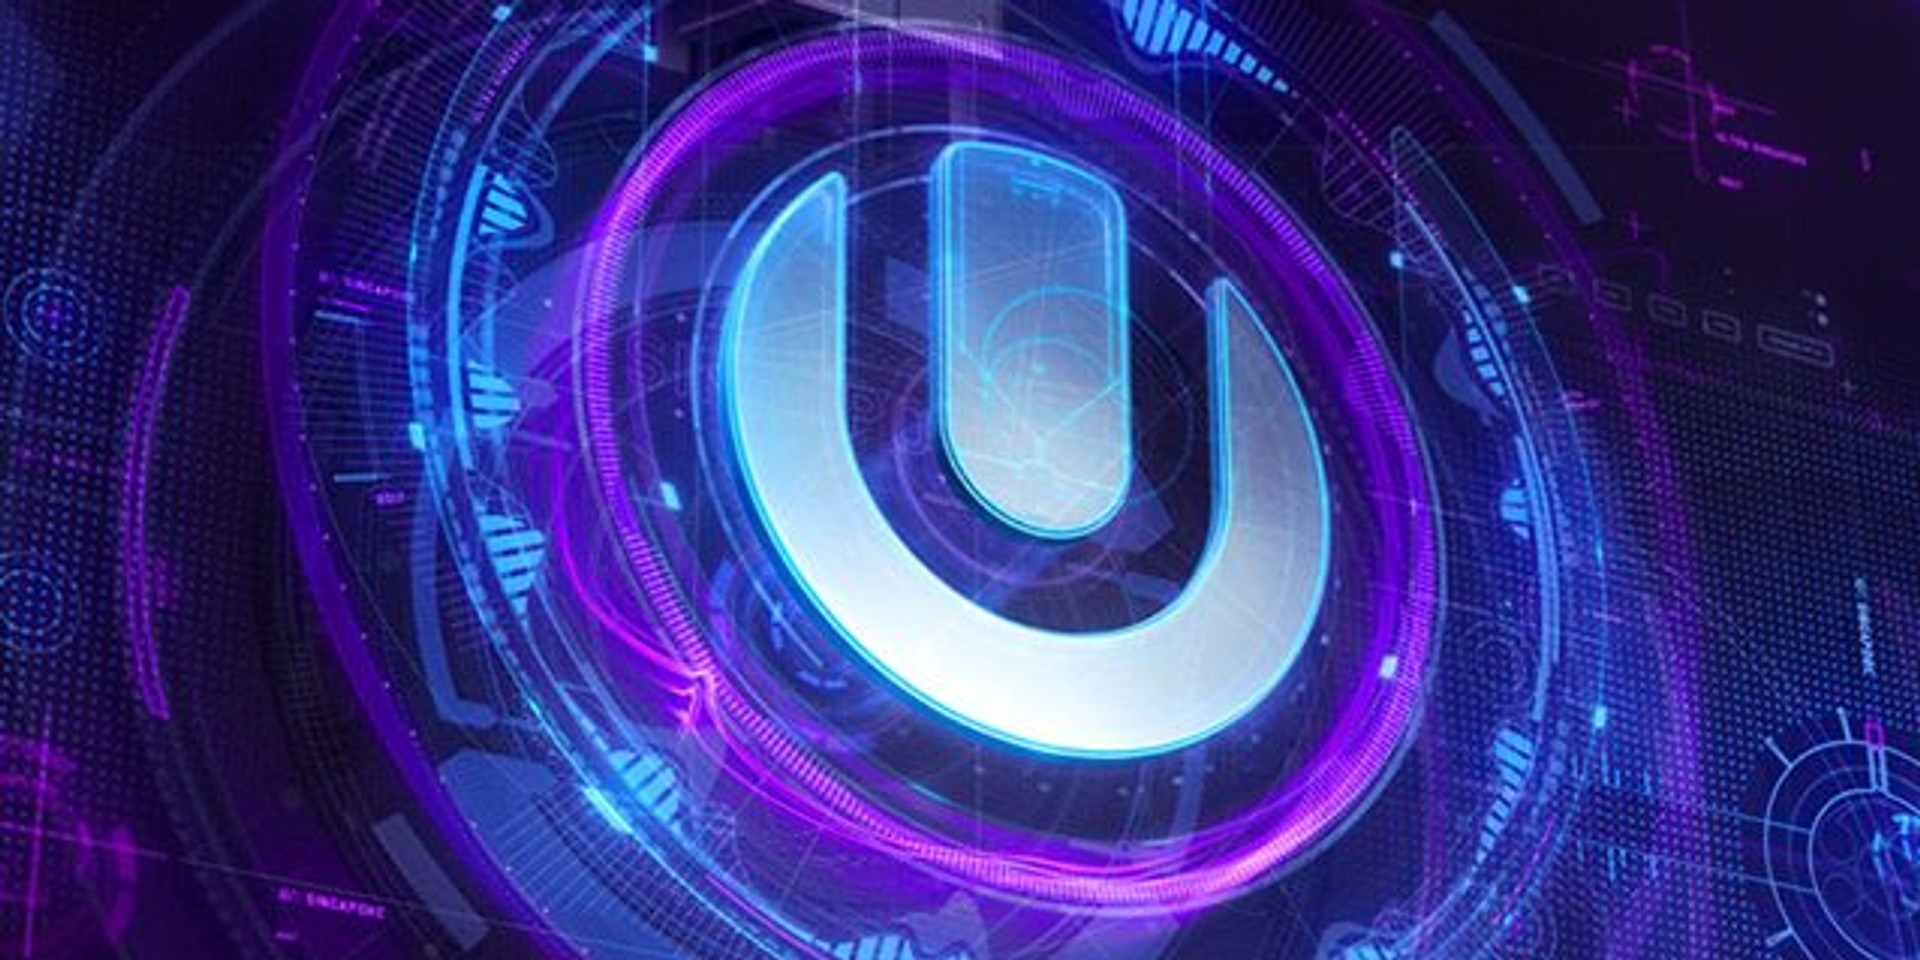 Ultra Singapore to return sooner than expected in 2017, ticket registrations open